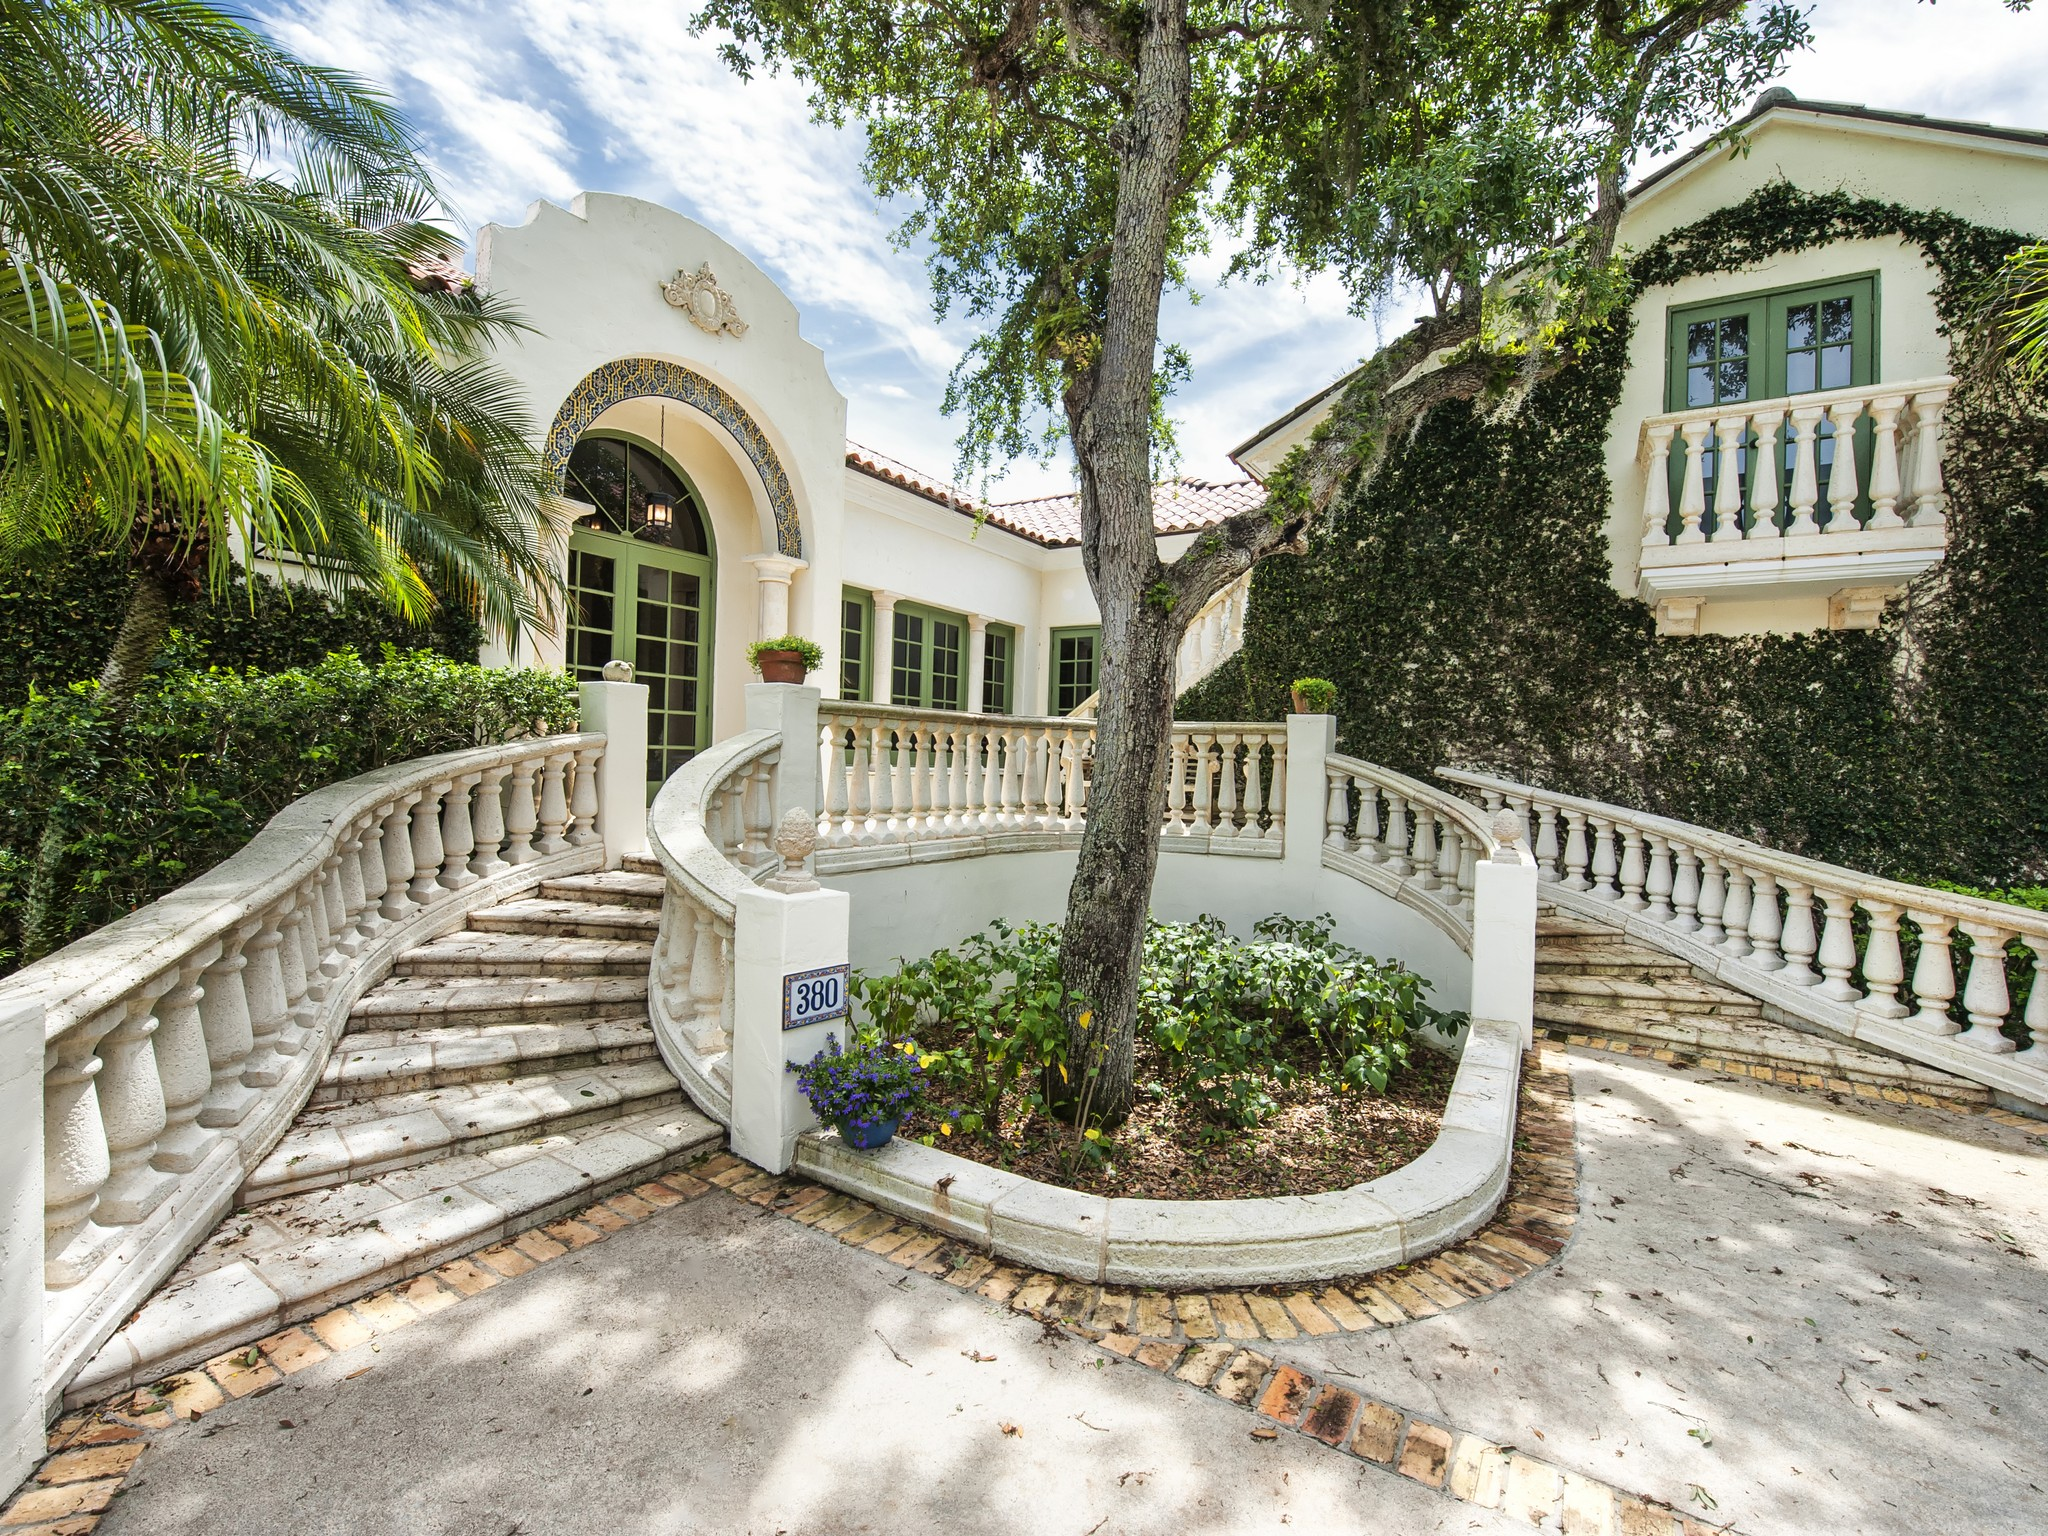 Single Family Home for Sale at Gorgeous Lakefront Pool home 380 Shores Dr Vero Beach, Florida 32963 United States